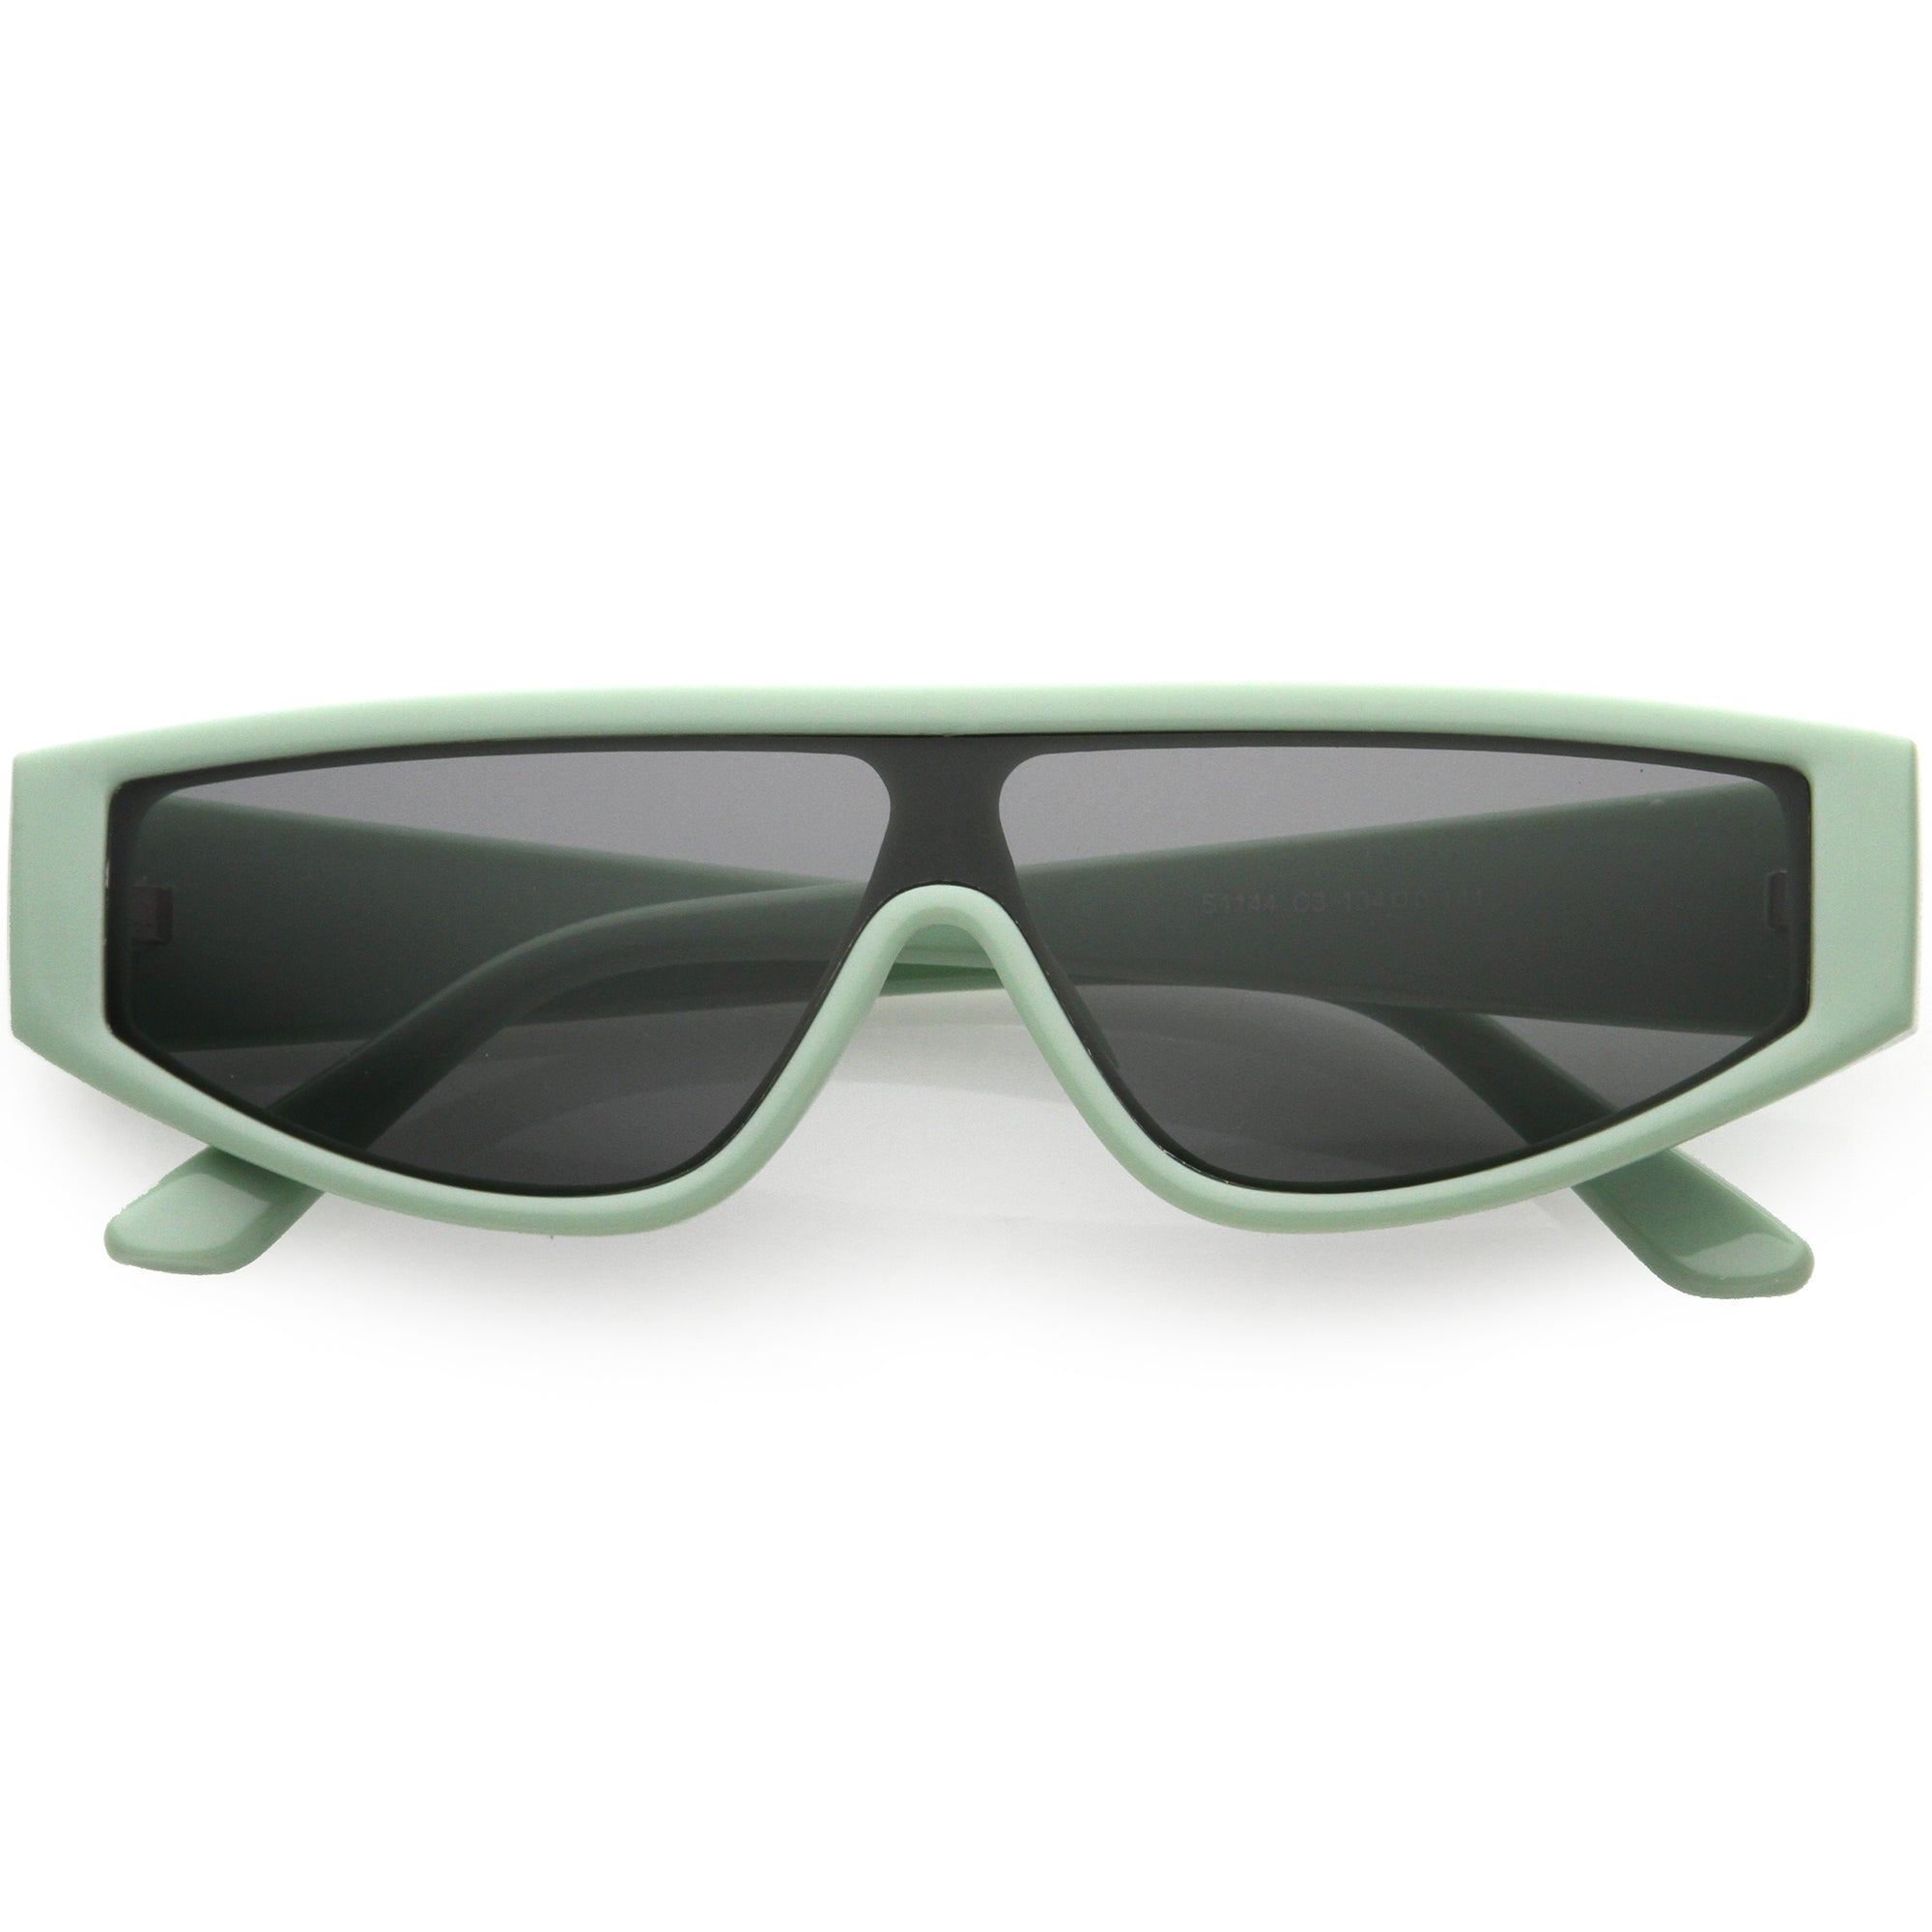 Cyber Chunky Flat Top Shield Mono Lens Sunglasses D107